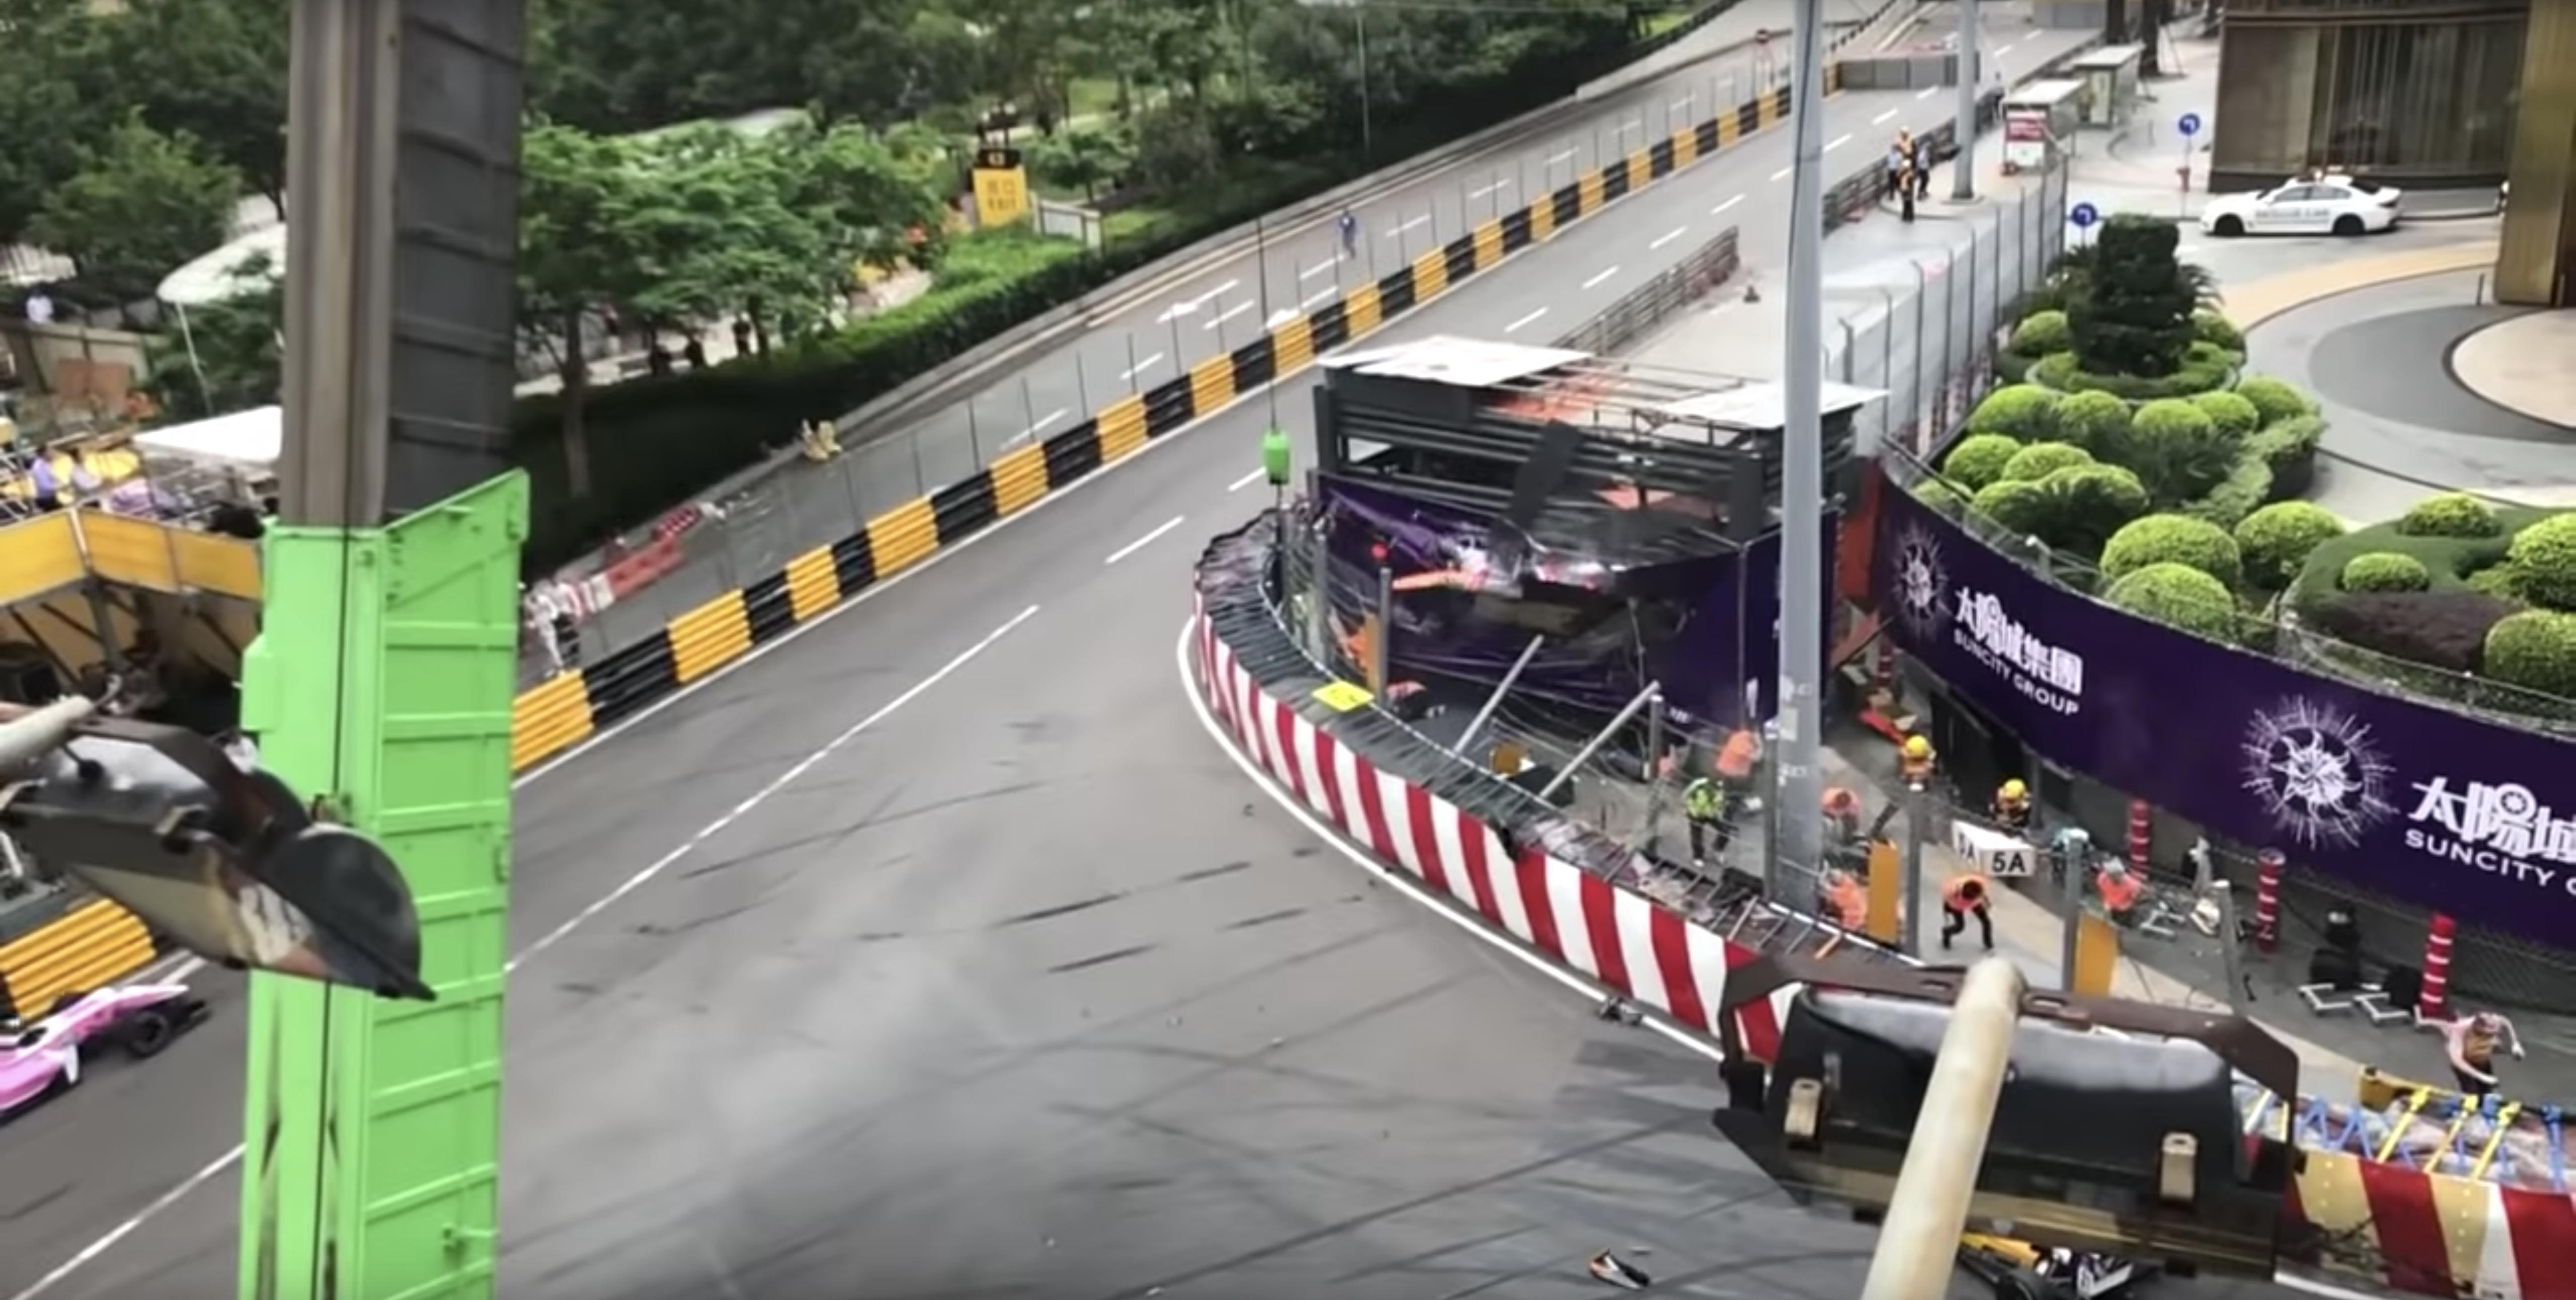 Marshals run for cover as the racing car smashes through the fencing into the stand